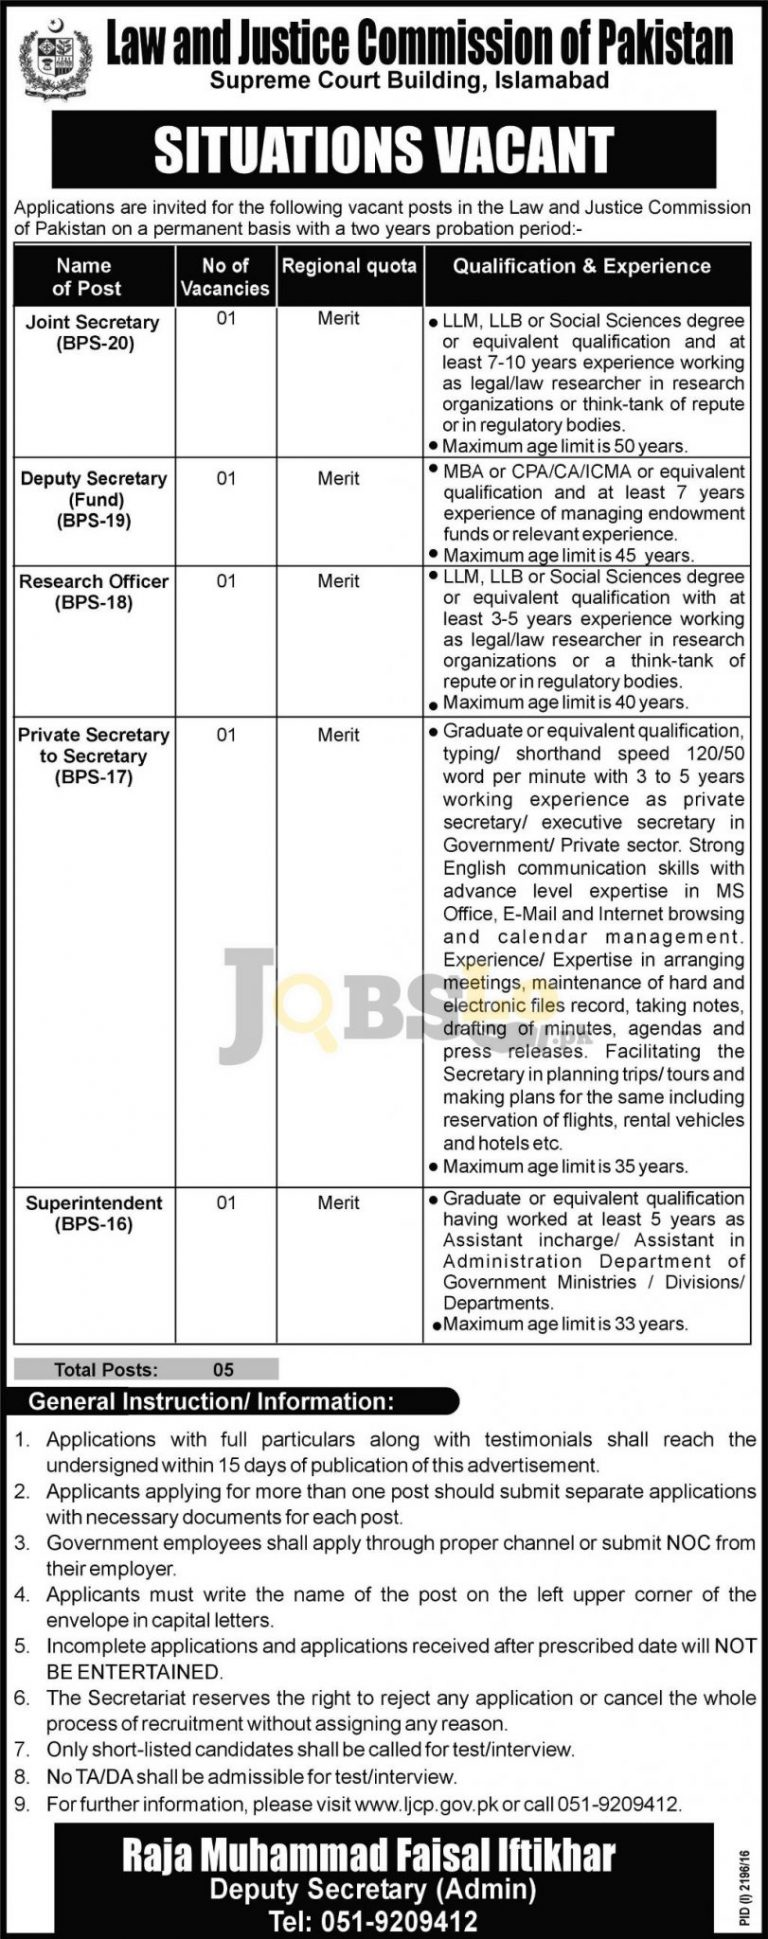 Law & Justice Commission of Pakistan Islamabad Jobs 2016 For Joint Secretary